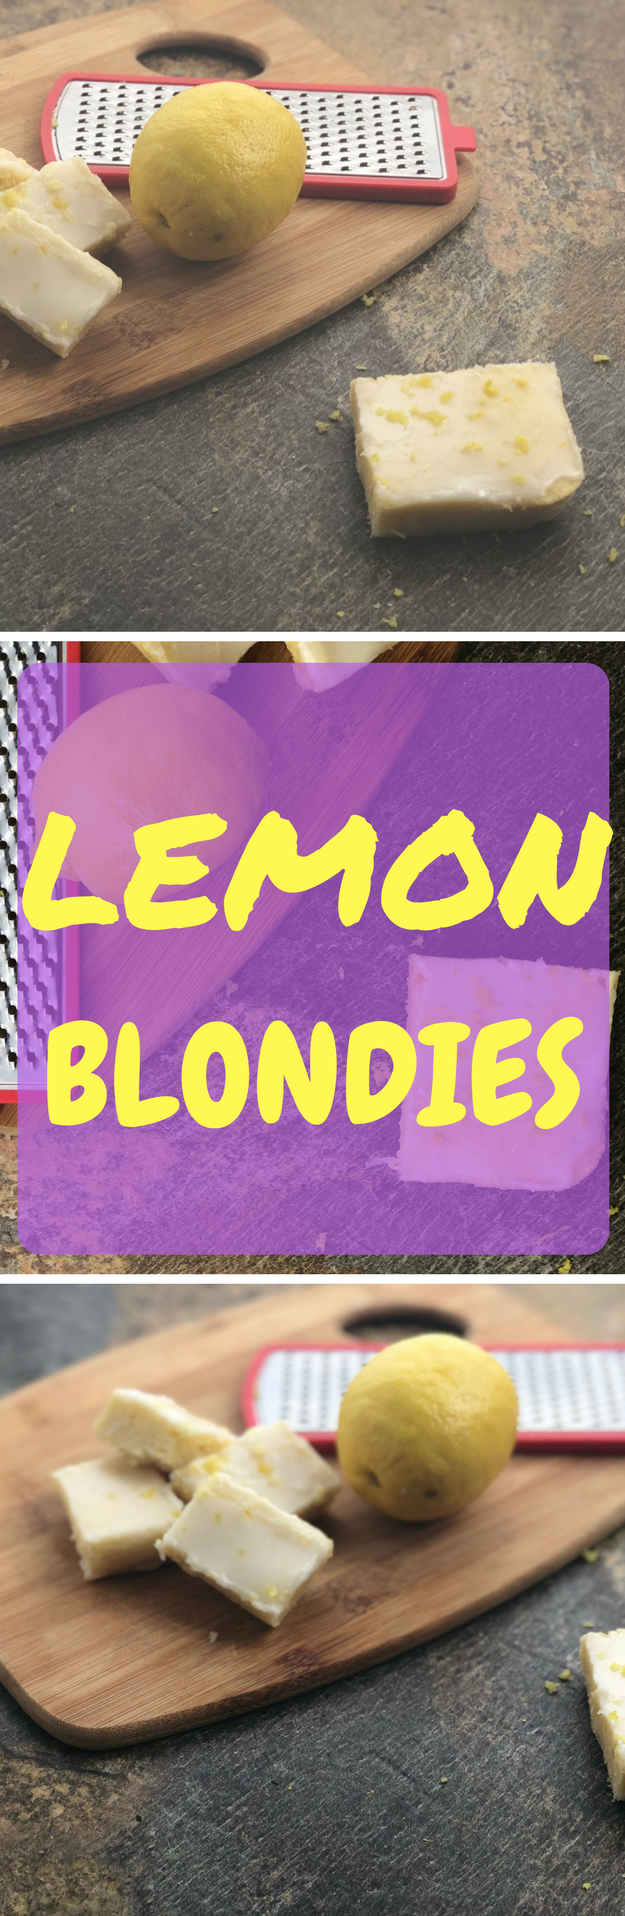 I hit the motherload of all blondie brownies, you guys! These lemon blondie brownies are bursting with that soft and moist blondie texture that has a lemon glaze that is dynamite! If you love lemon and blondies, then this recipe for lemon brownies is a must.